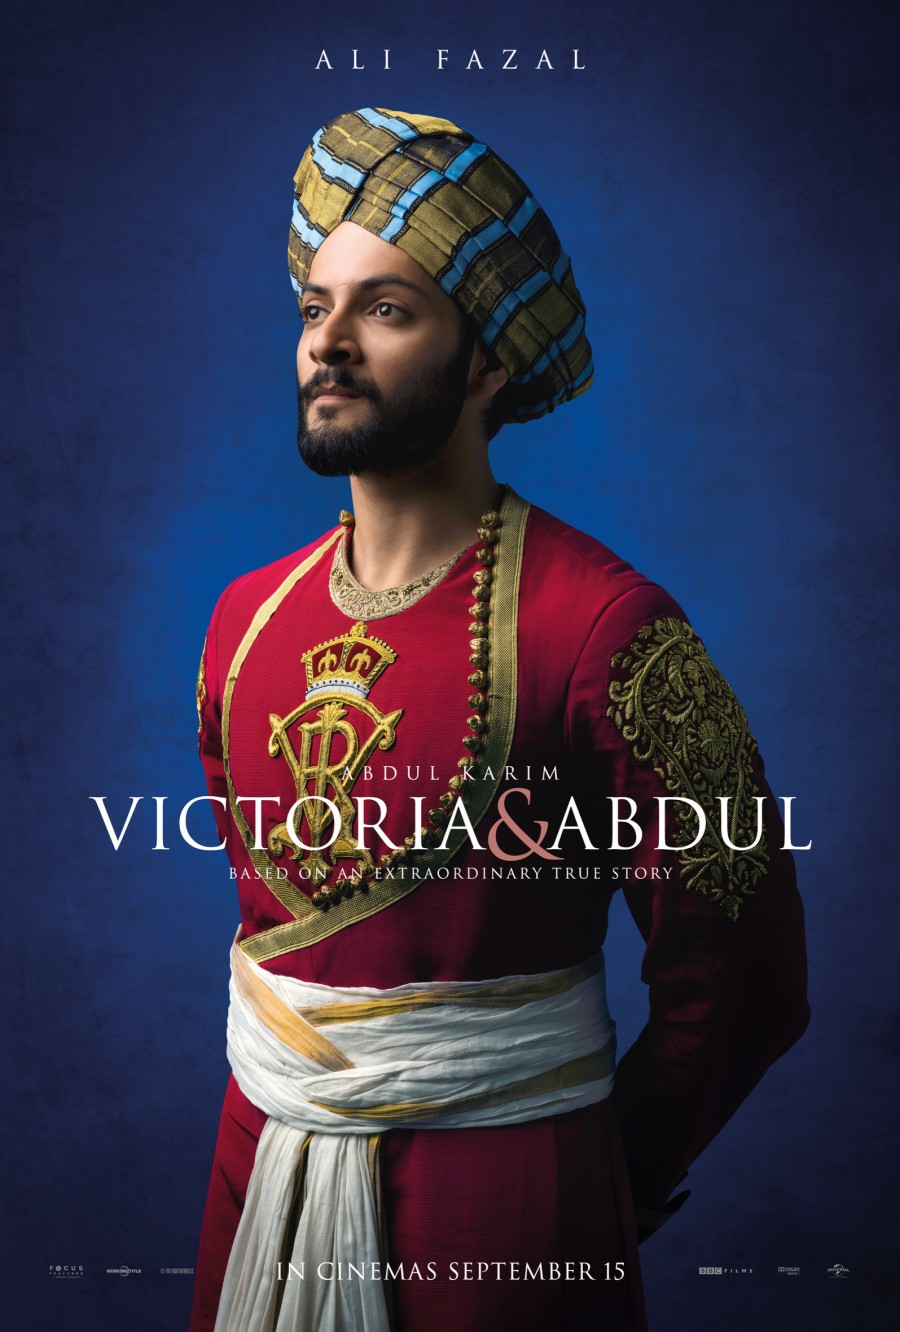 Ali Fazal as Abdul Karim In Victoria and Abdul - Poster Revealed!